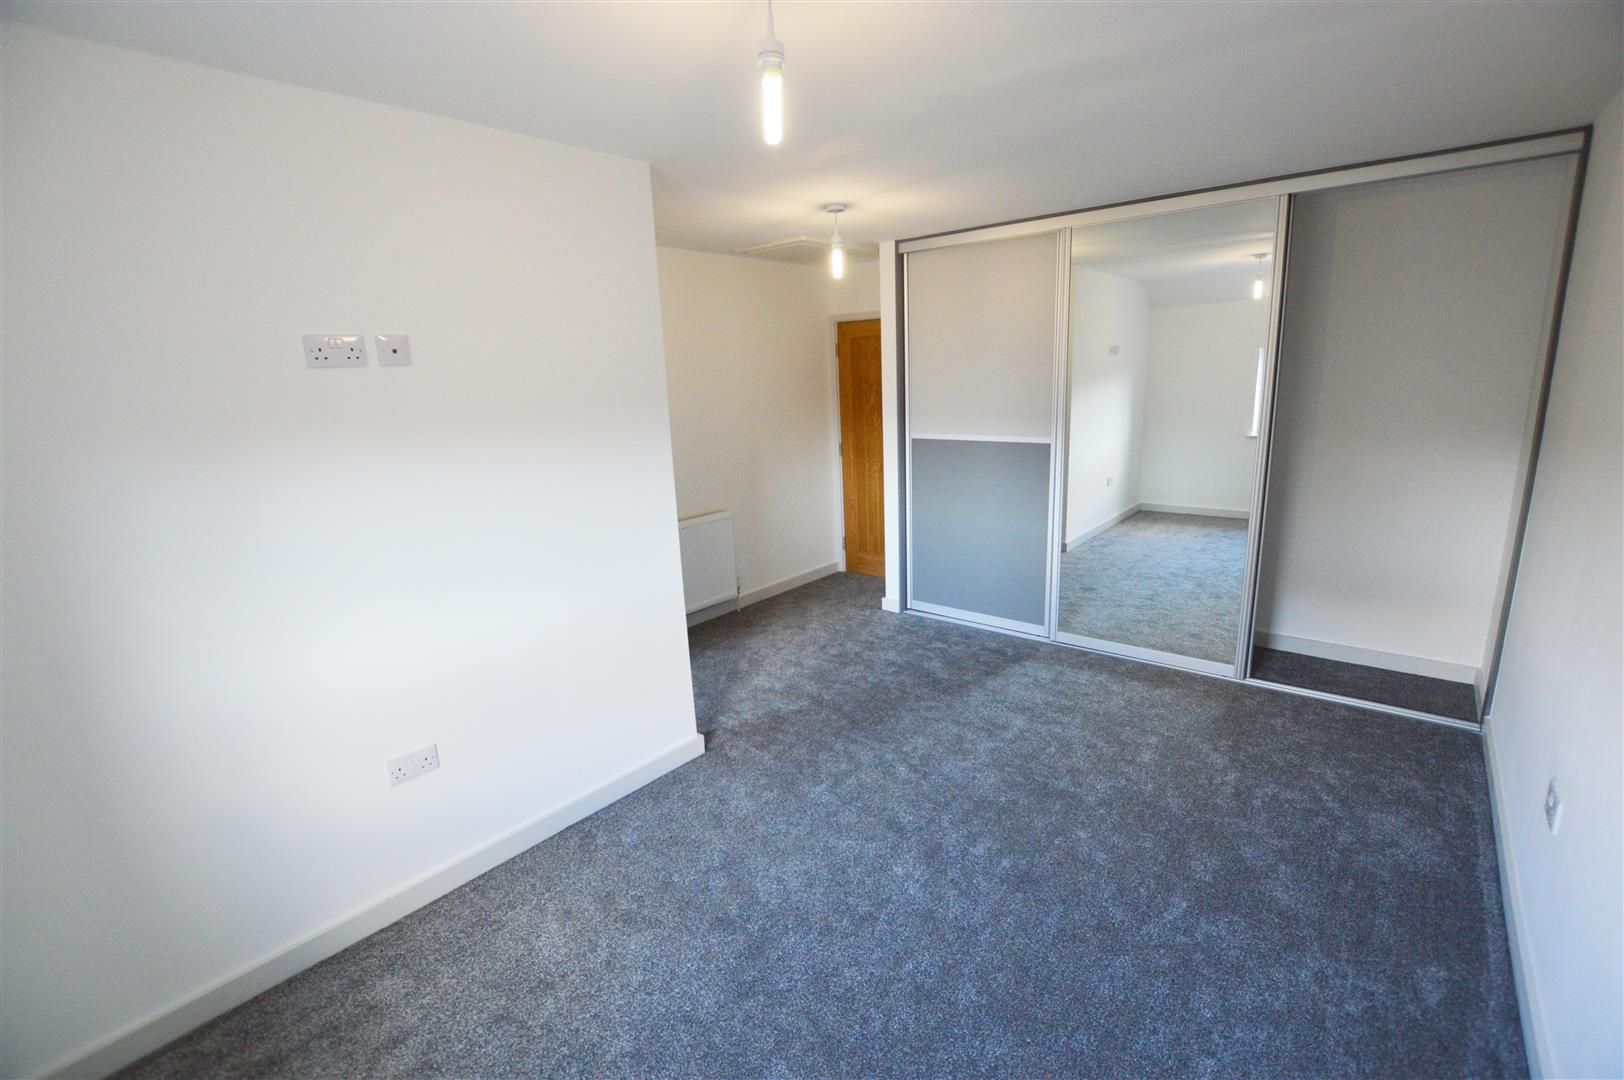 3 bed end of terrace for sale in Leominster 9